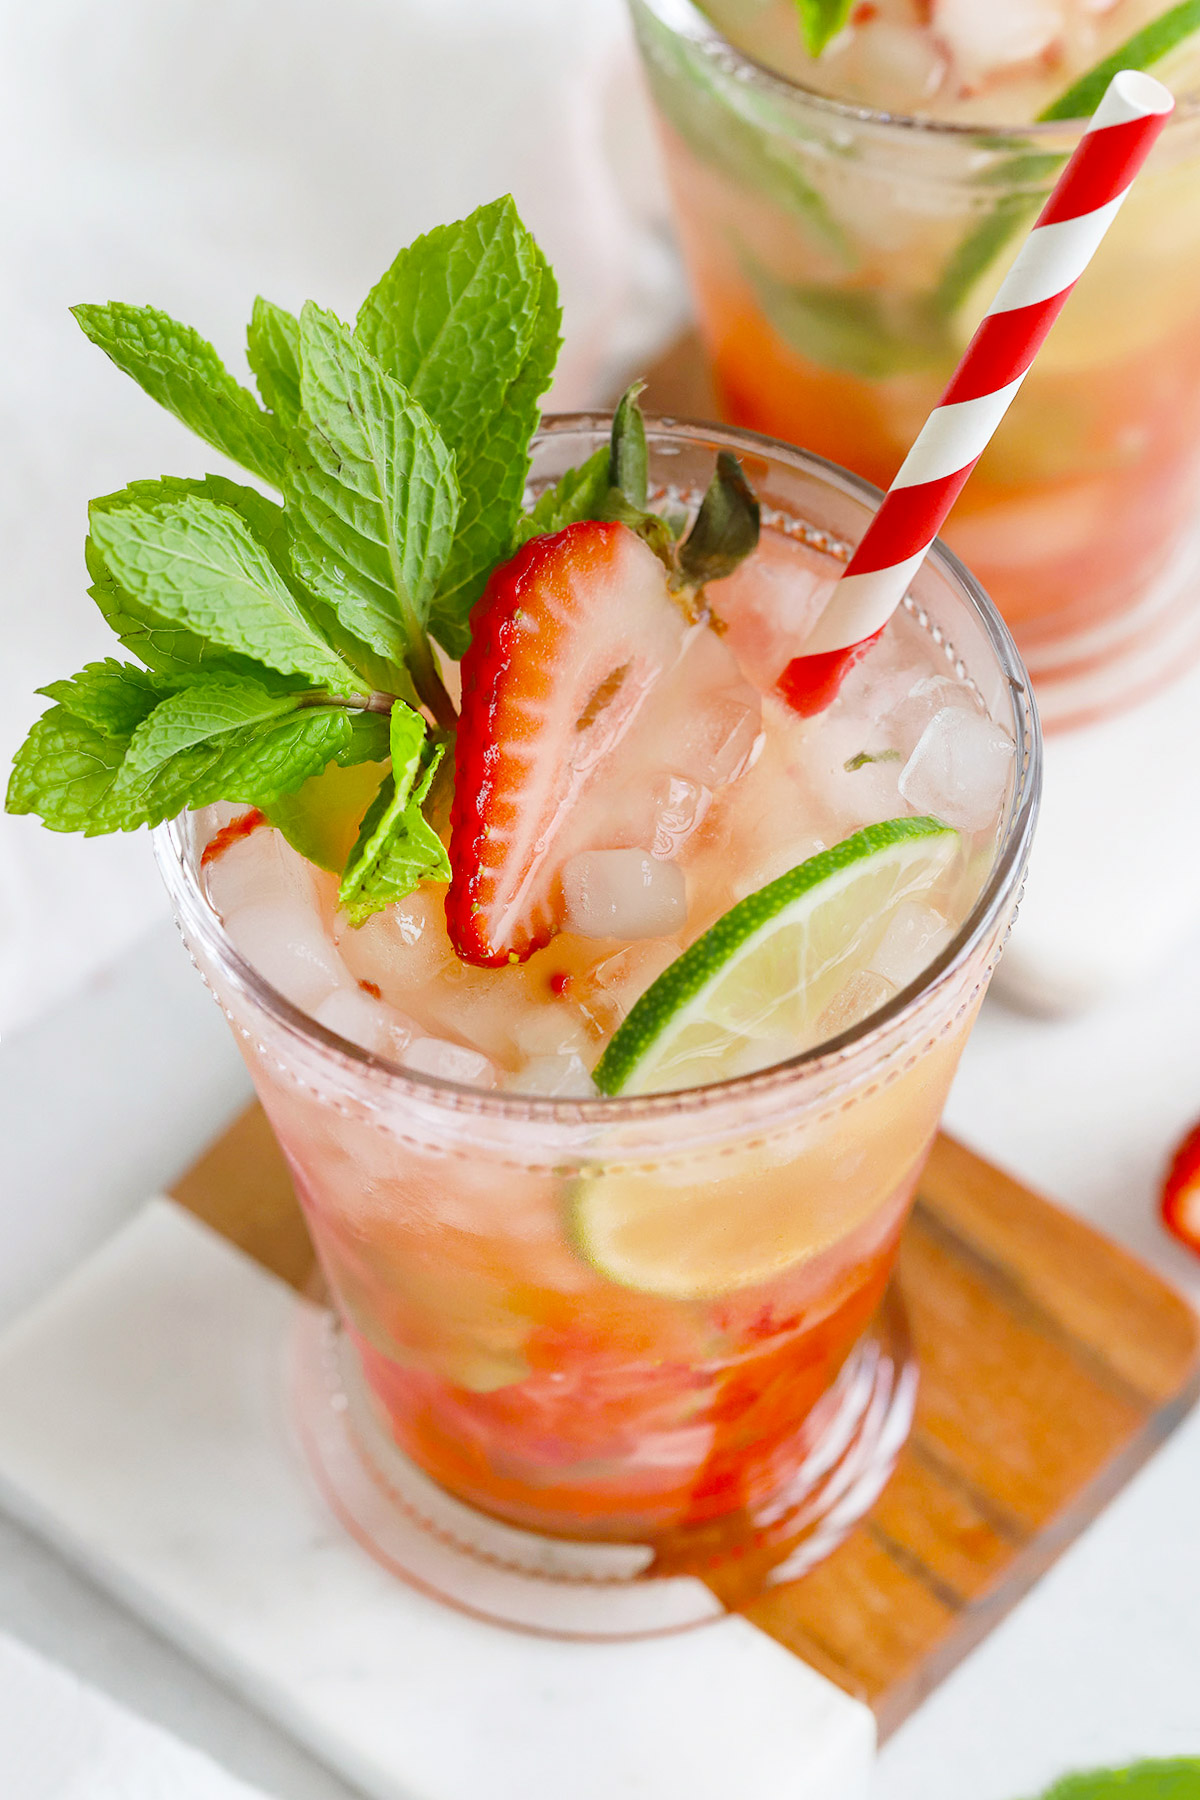 Front view of a non-alcoholic strawberry mint julep mocktail in a glass julep cup